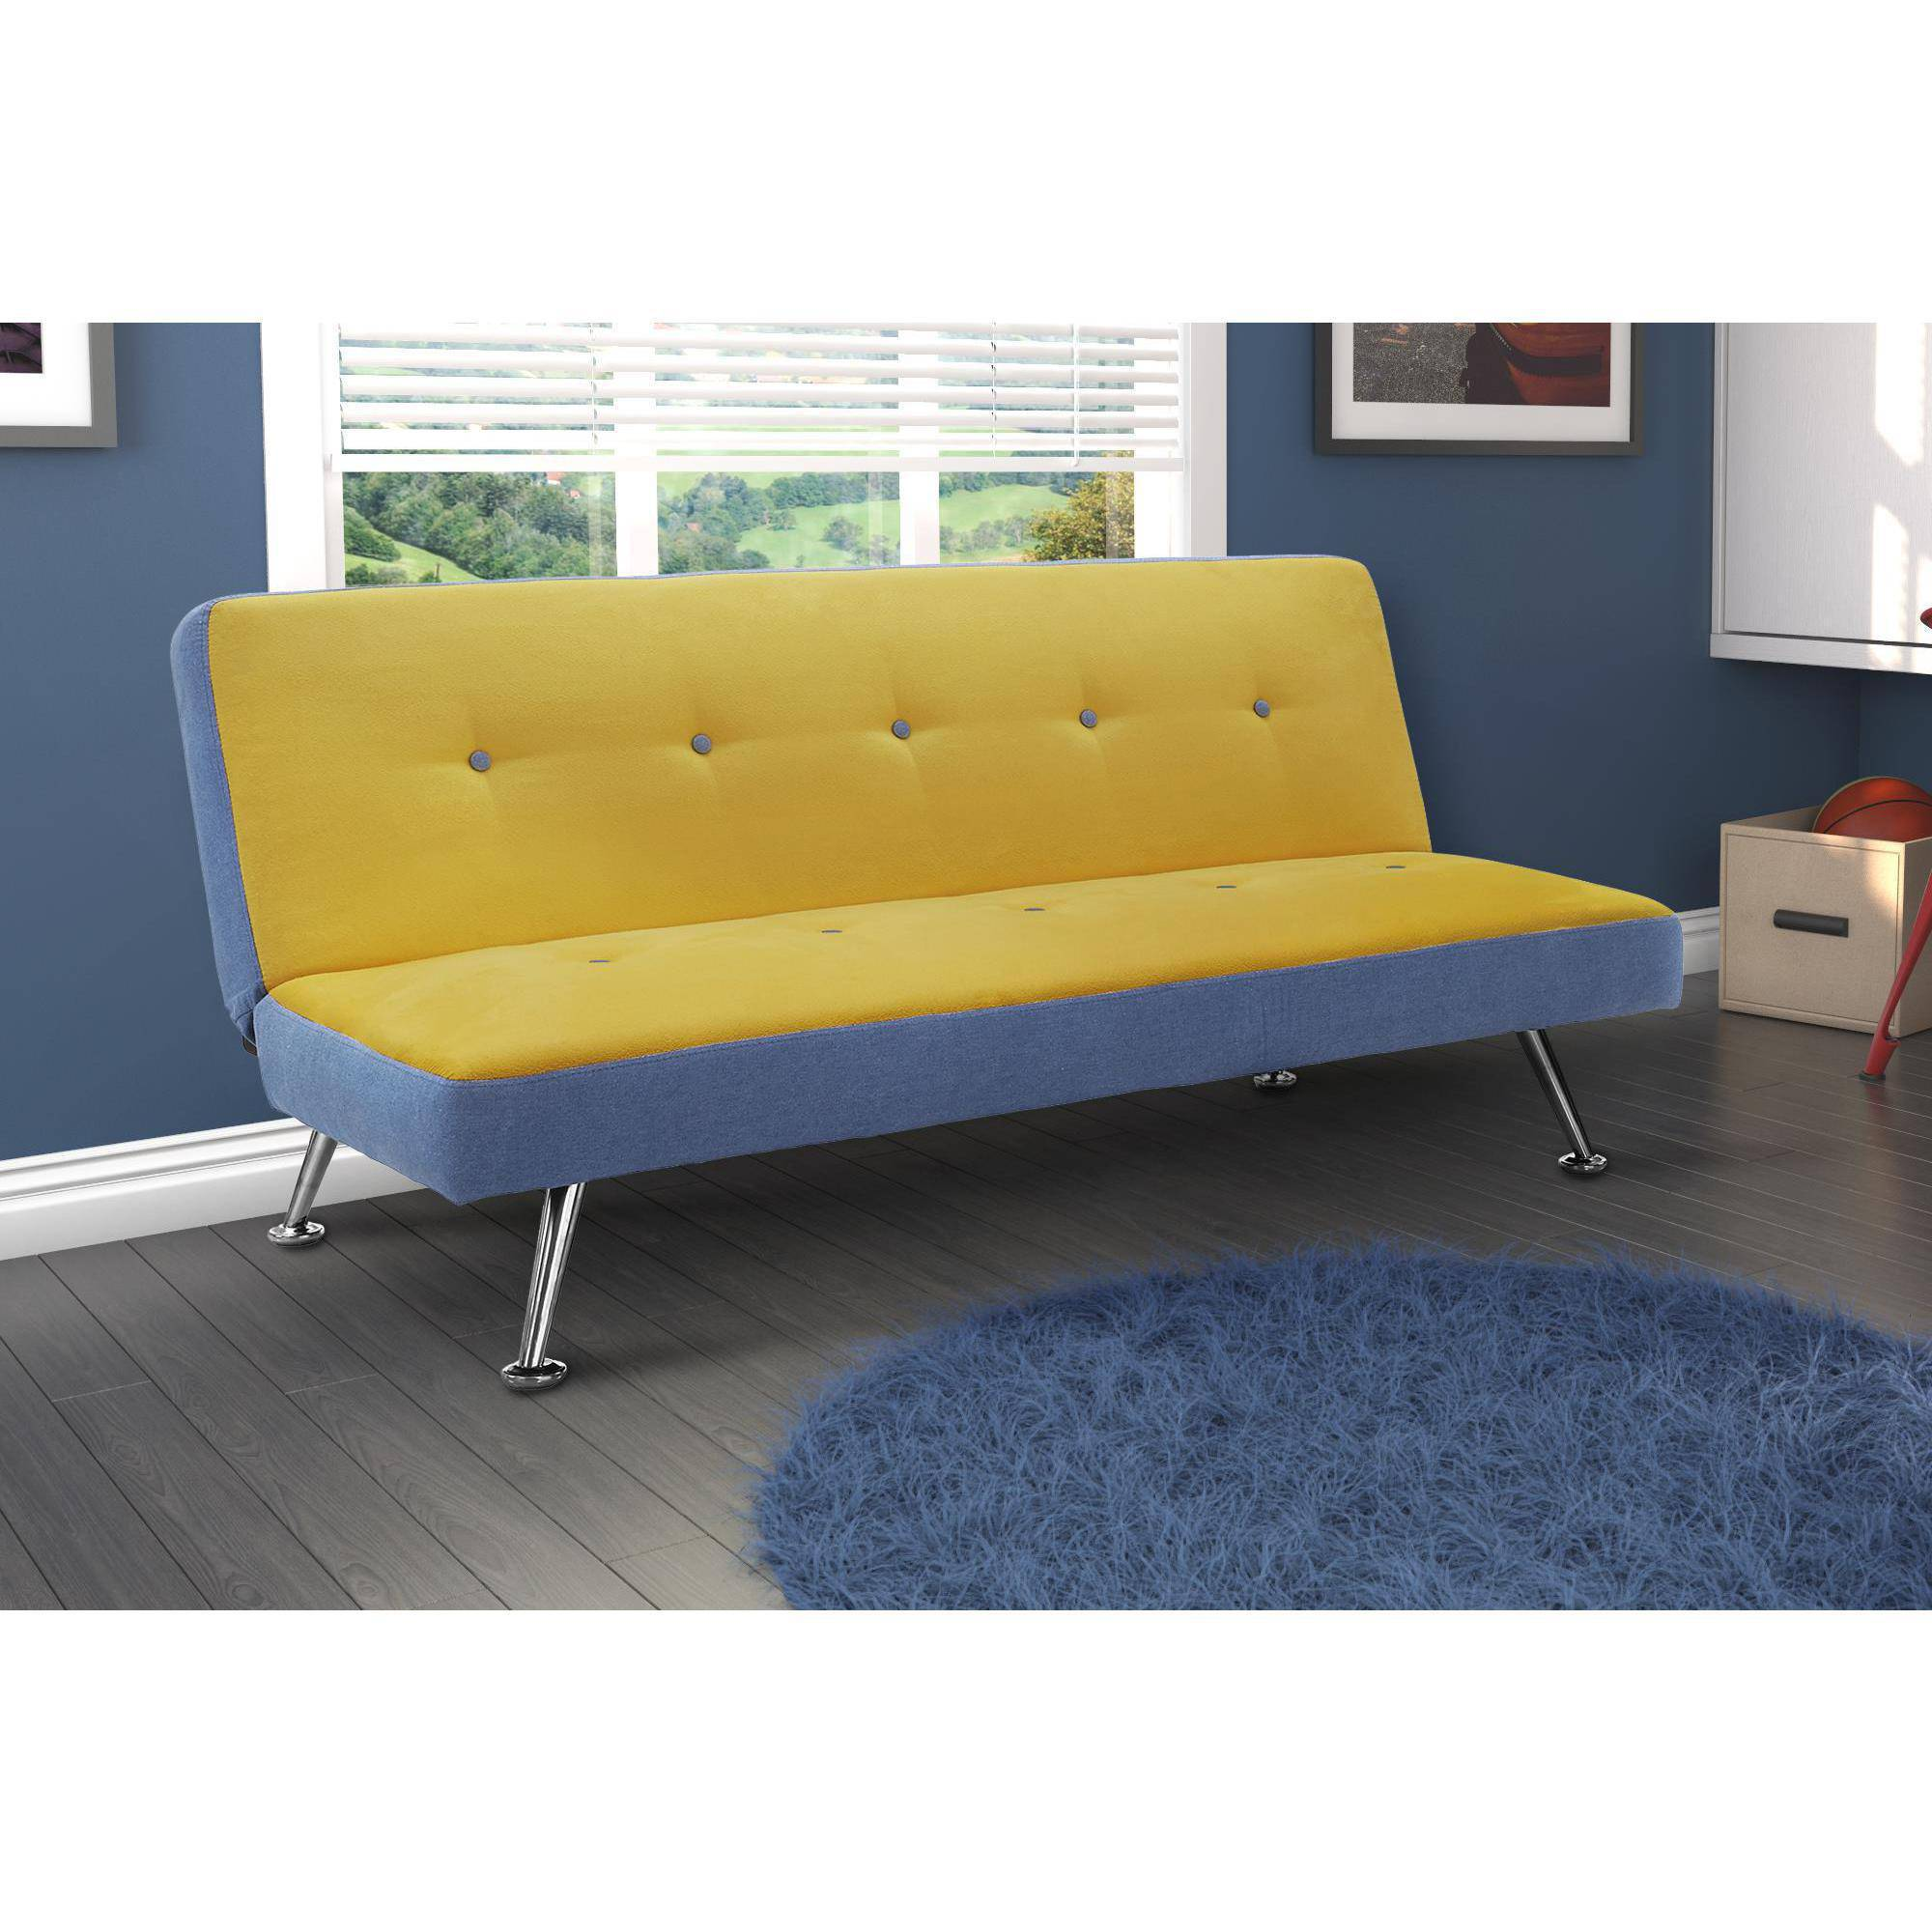 Dorel Home Products Junior Microfiber and Denim Futon, Minion Yellow